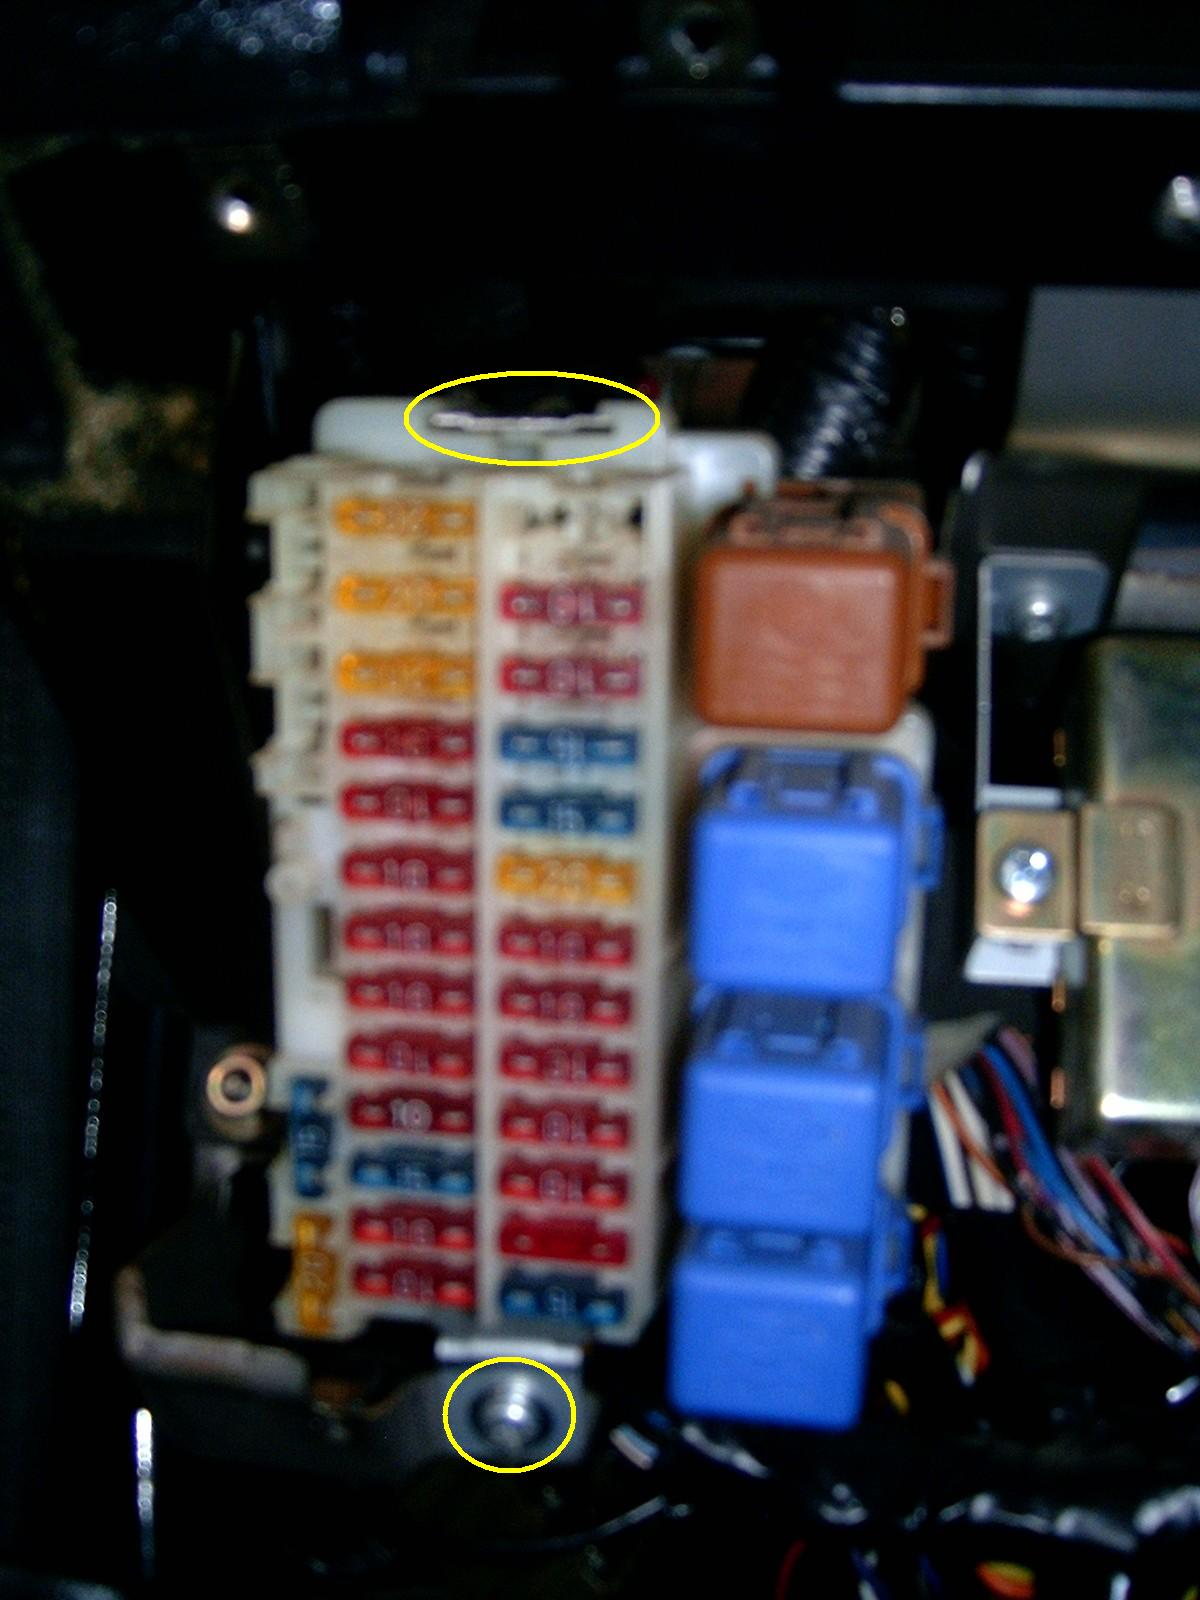 1994 Nissan Sentra Fuse Box Trusted Wiring Diagram 1990 Maxima Fuses Residential Electrical Symbols U2022 2011 Location